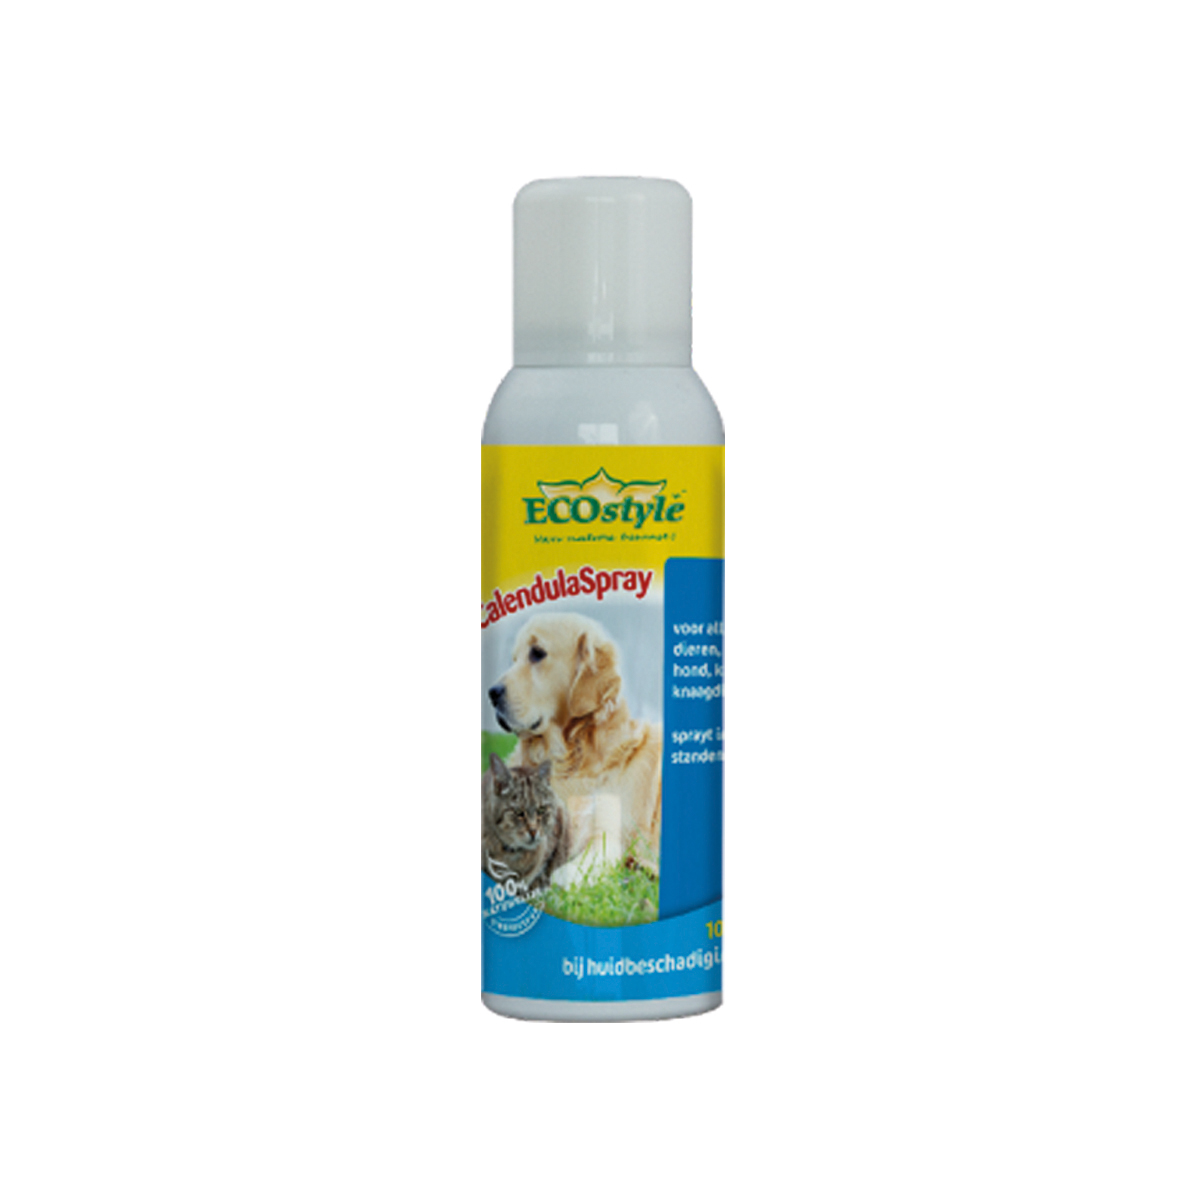 ECO CALENDULASPRAY 100ML 00001